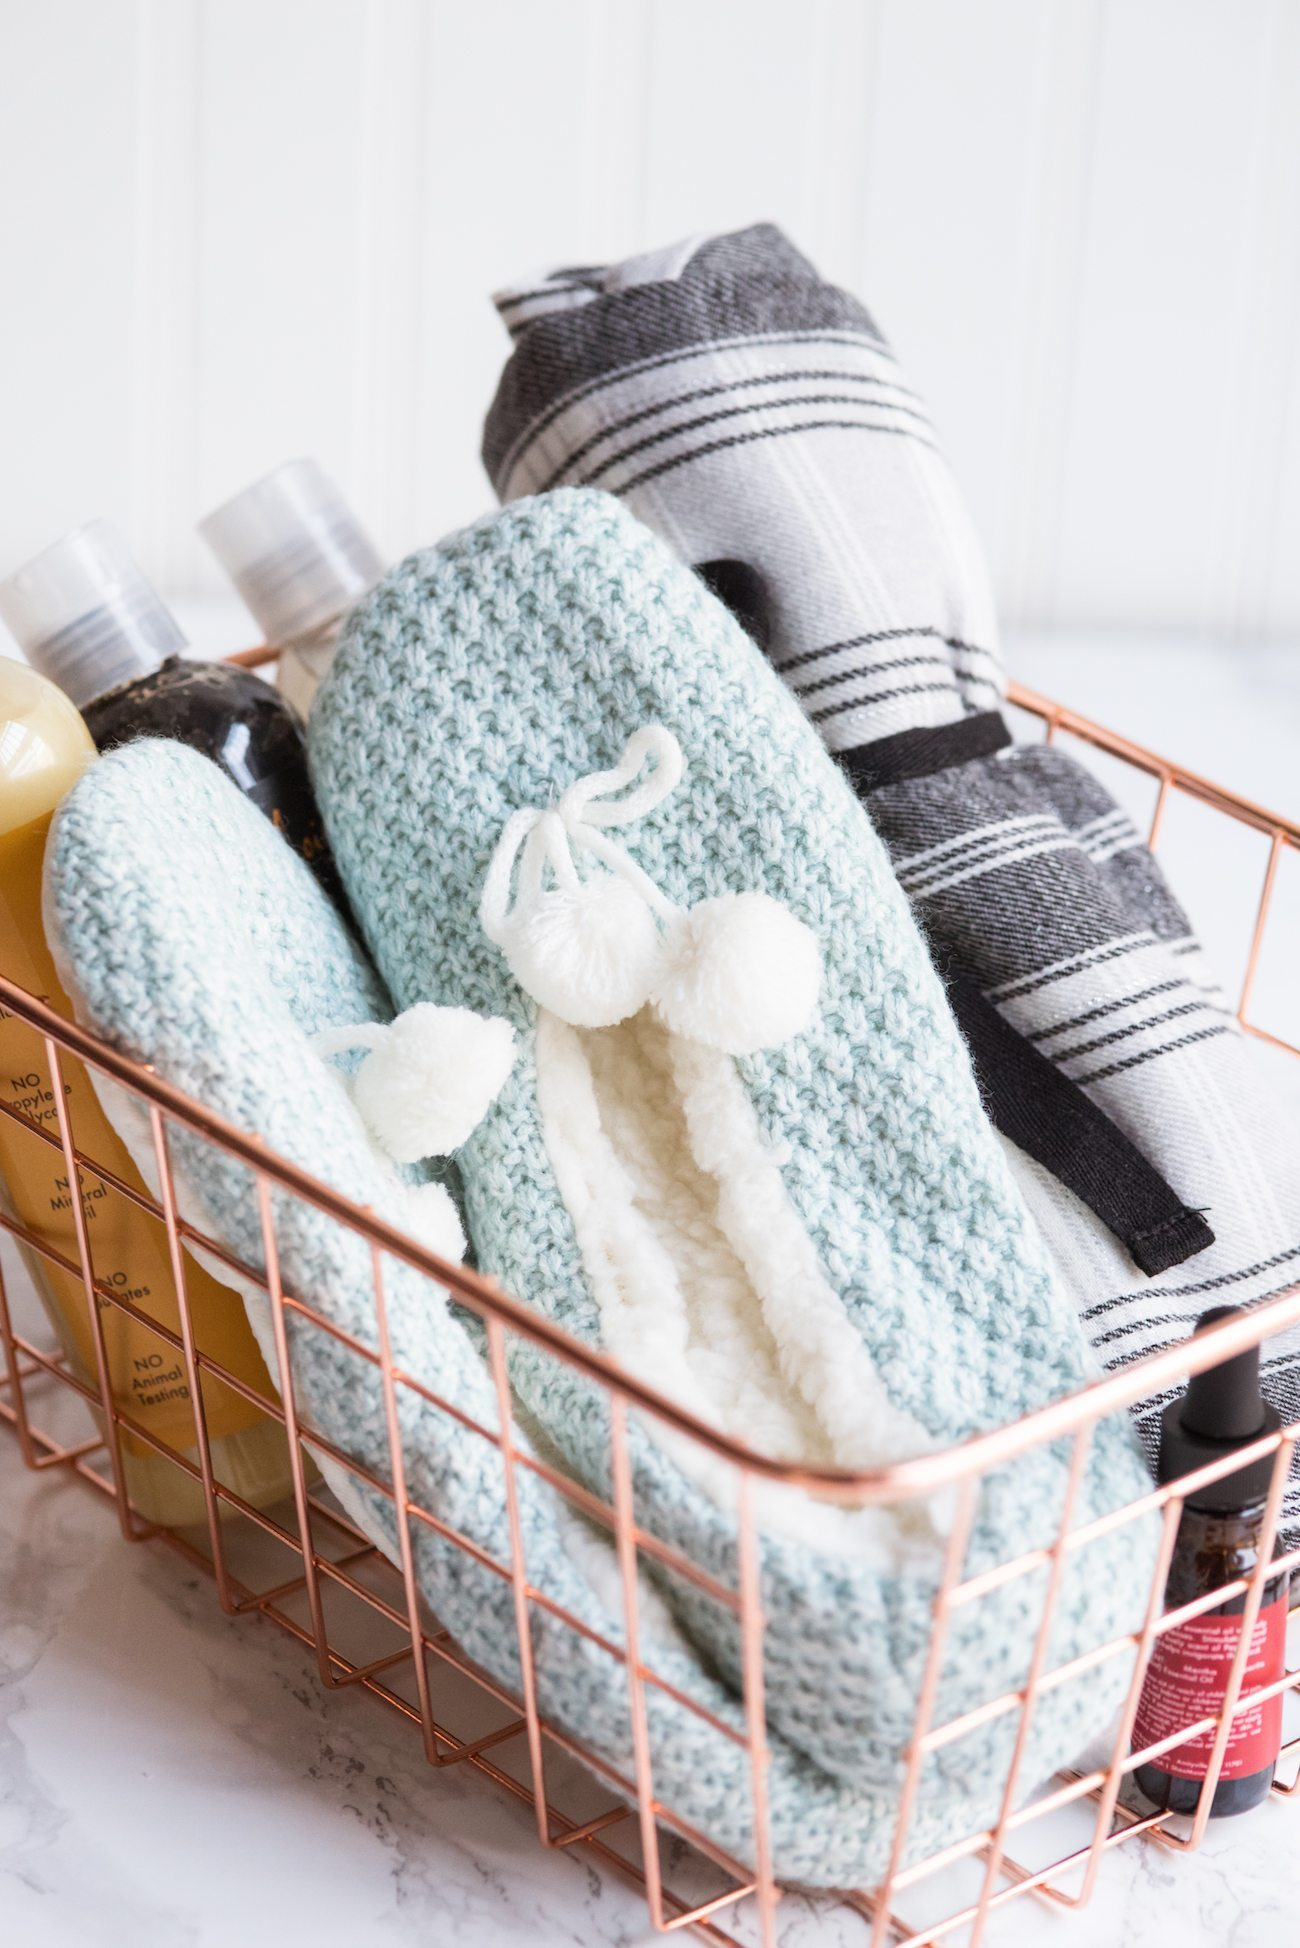 DIY Spa Gift Basket + Homemade Peppermint Foot Soak from @cydconverse